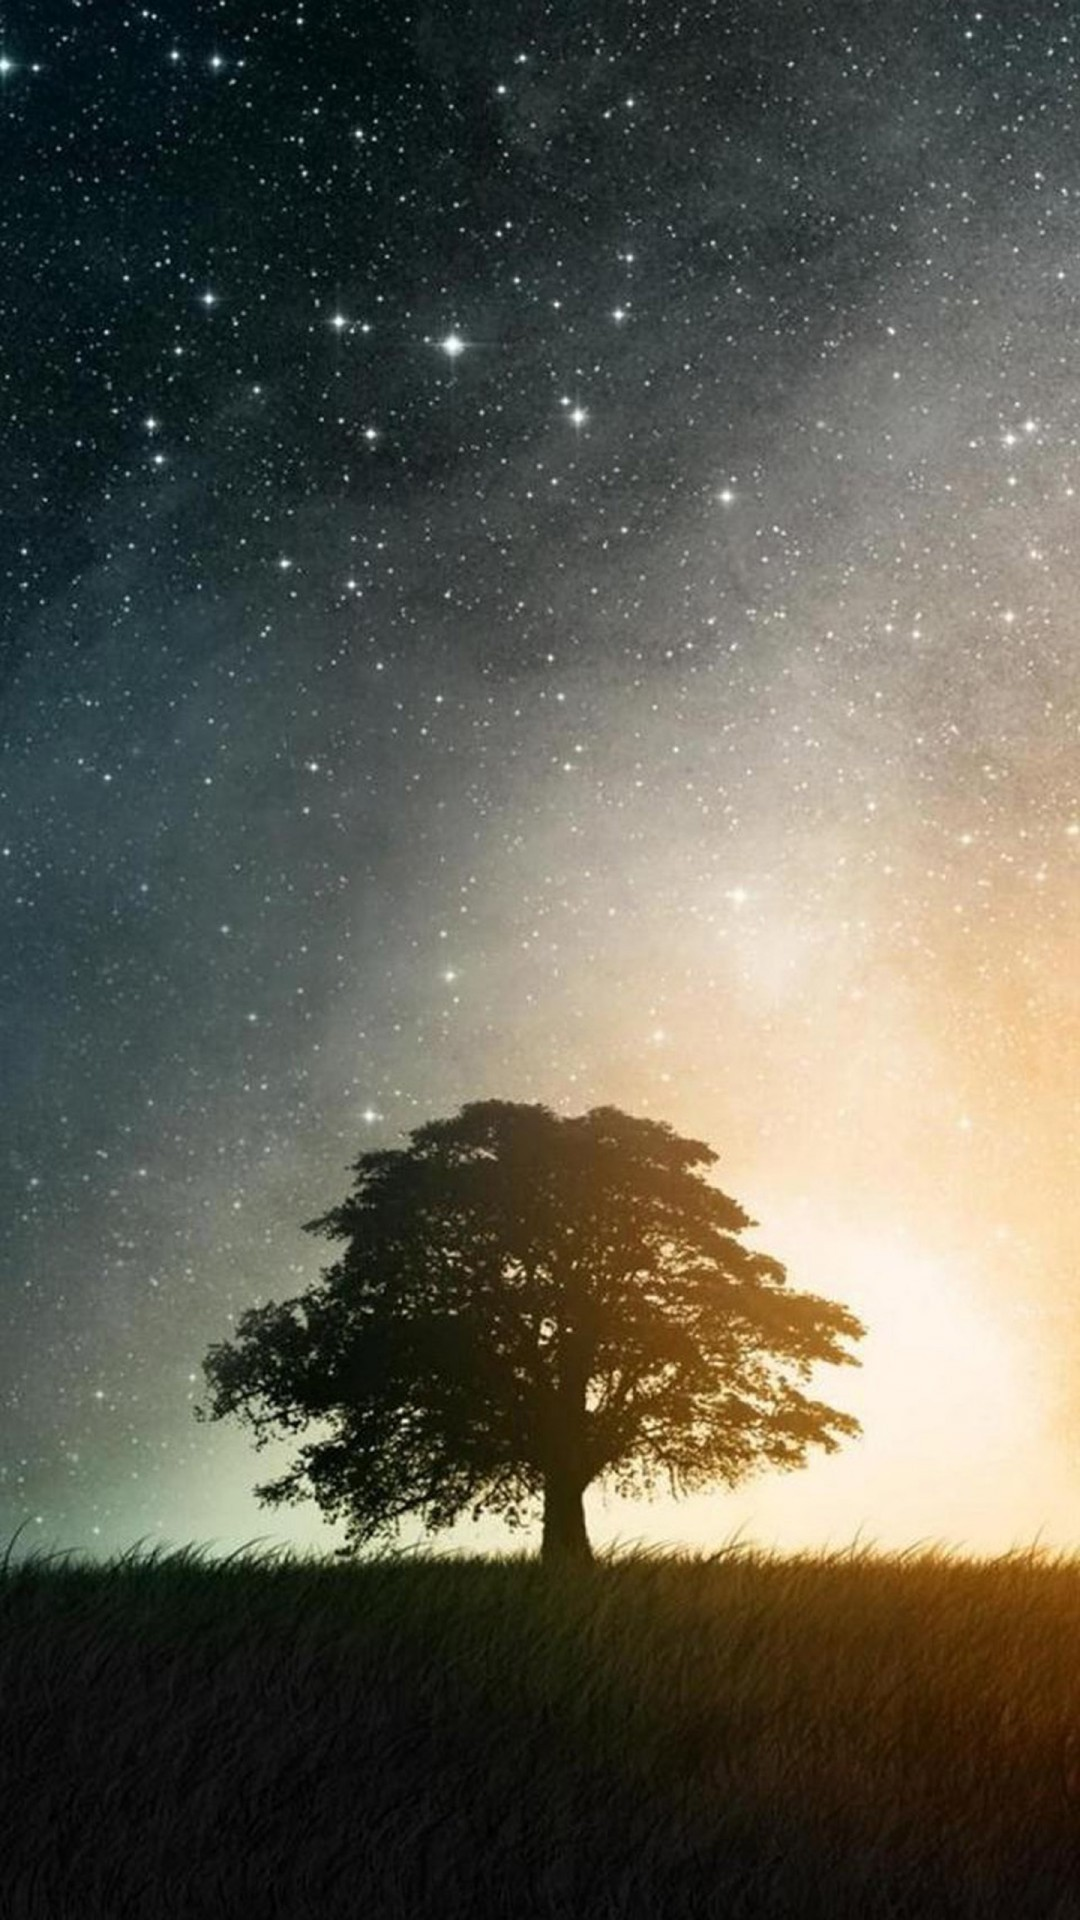 Download Wallpaper Night Iphone 7 - the-tree-in-the-field-at-the-night-wallpaper-background-1080x1920  Picture-63874.jpg